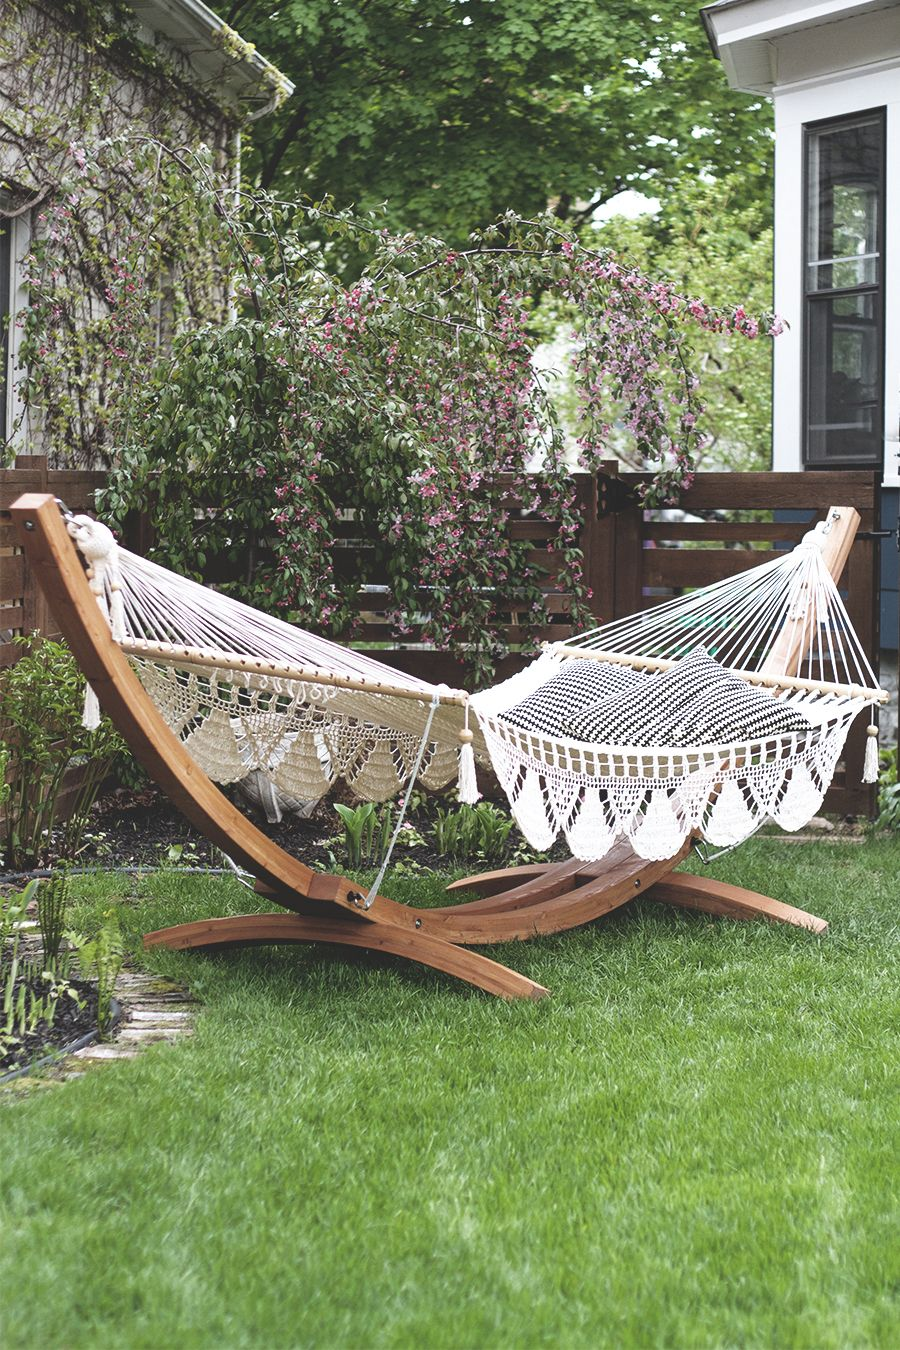 21 Hammock Design Ideas Add Cozy Atmosphere To Your Home